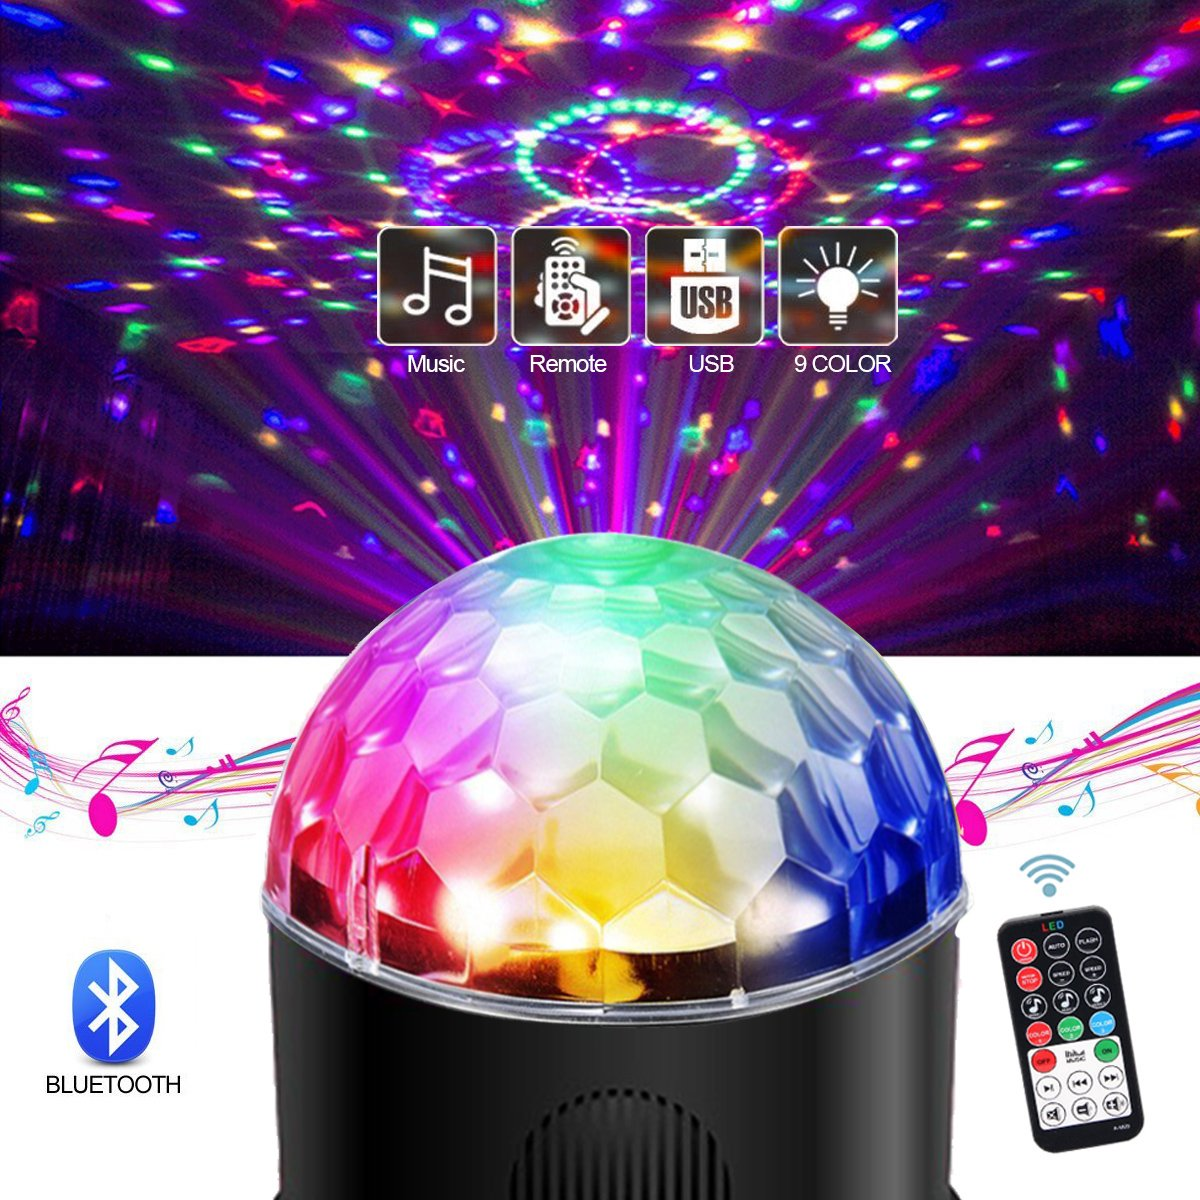 Led Sound Activated Party Lighs Disco Ball DJ Strobe Club Lamp 9 Colors Lighting with Bluetooth Speaker Usb Charging Remote Control for Christmas Home Room Dance Parties Birthday DJ Bar Wedding Show